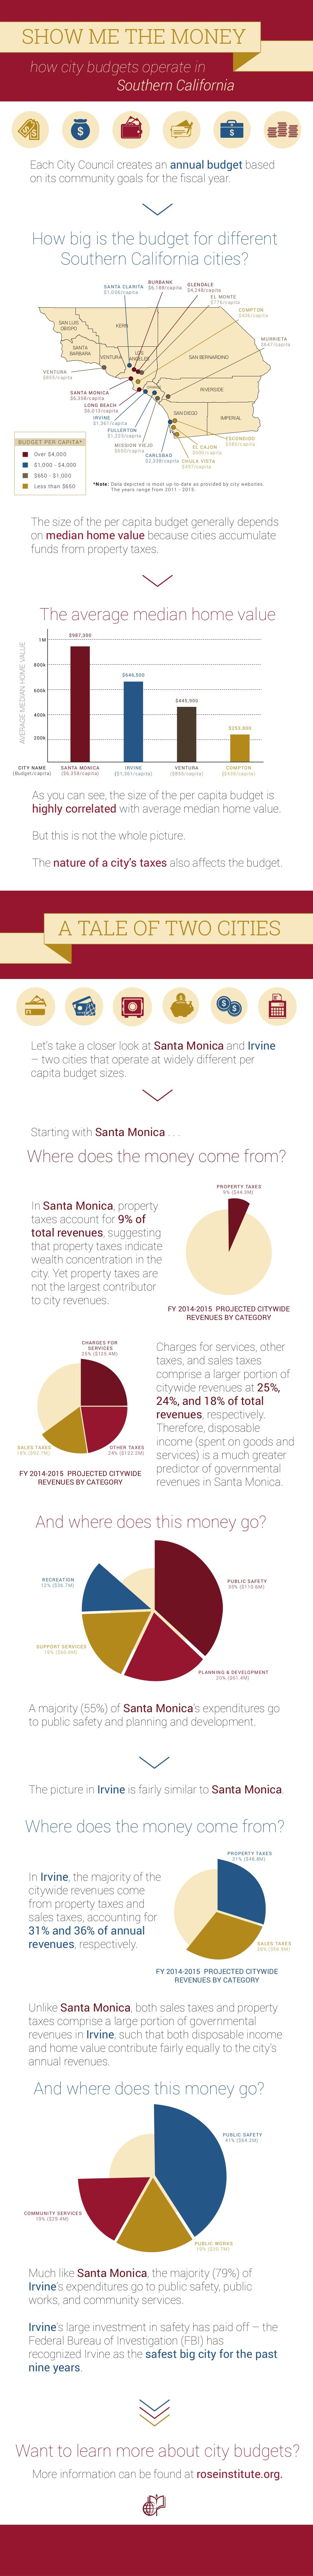 Show Me the Money: How City Budgets Work in Southern California